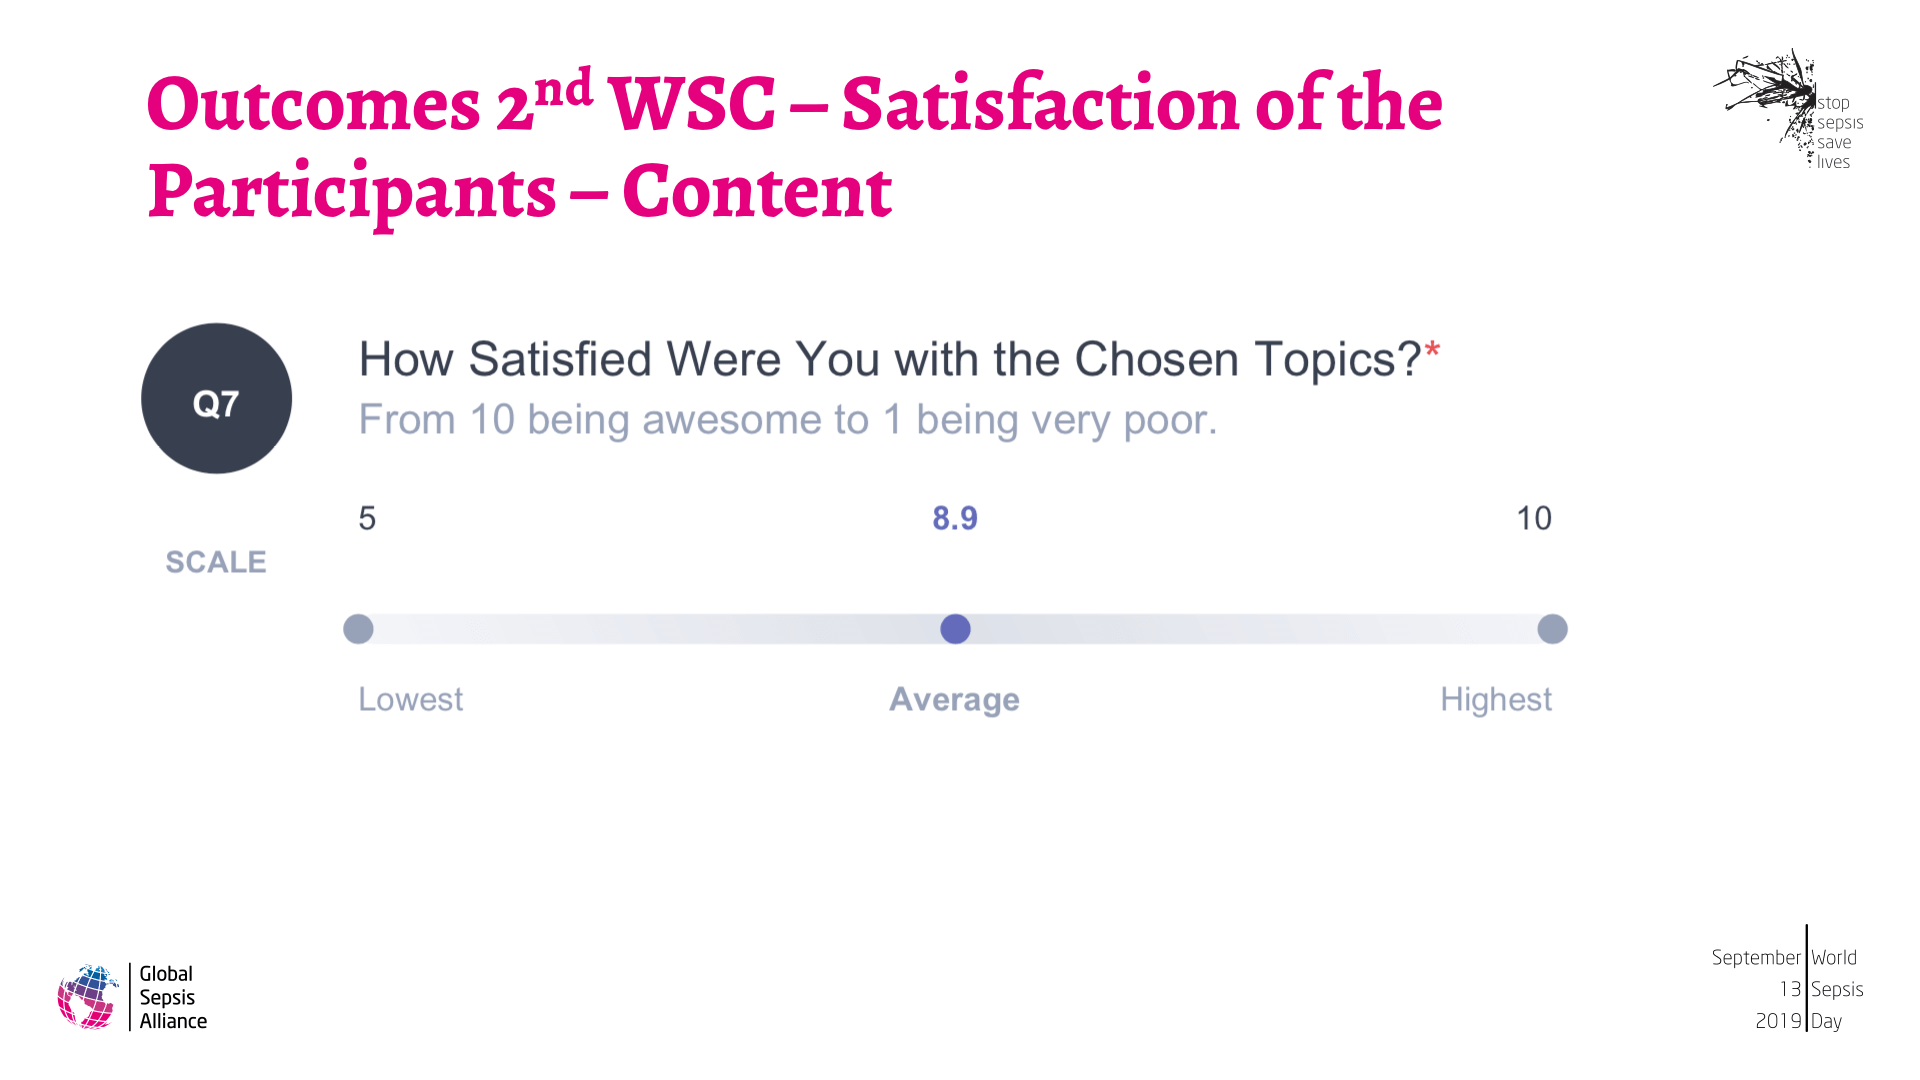 Outcomes 2nd WSC and WSD 2018 7.png